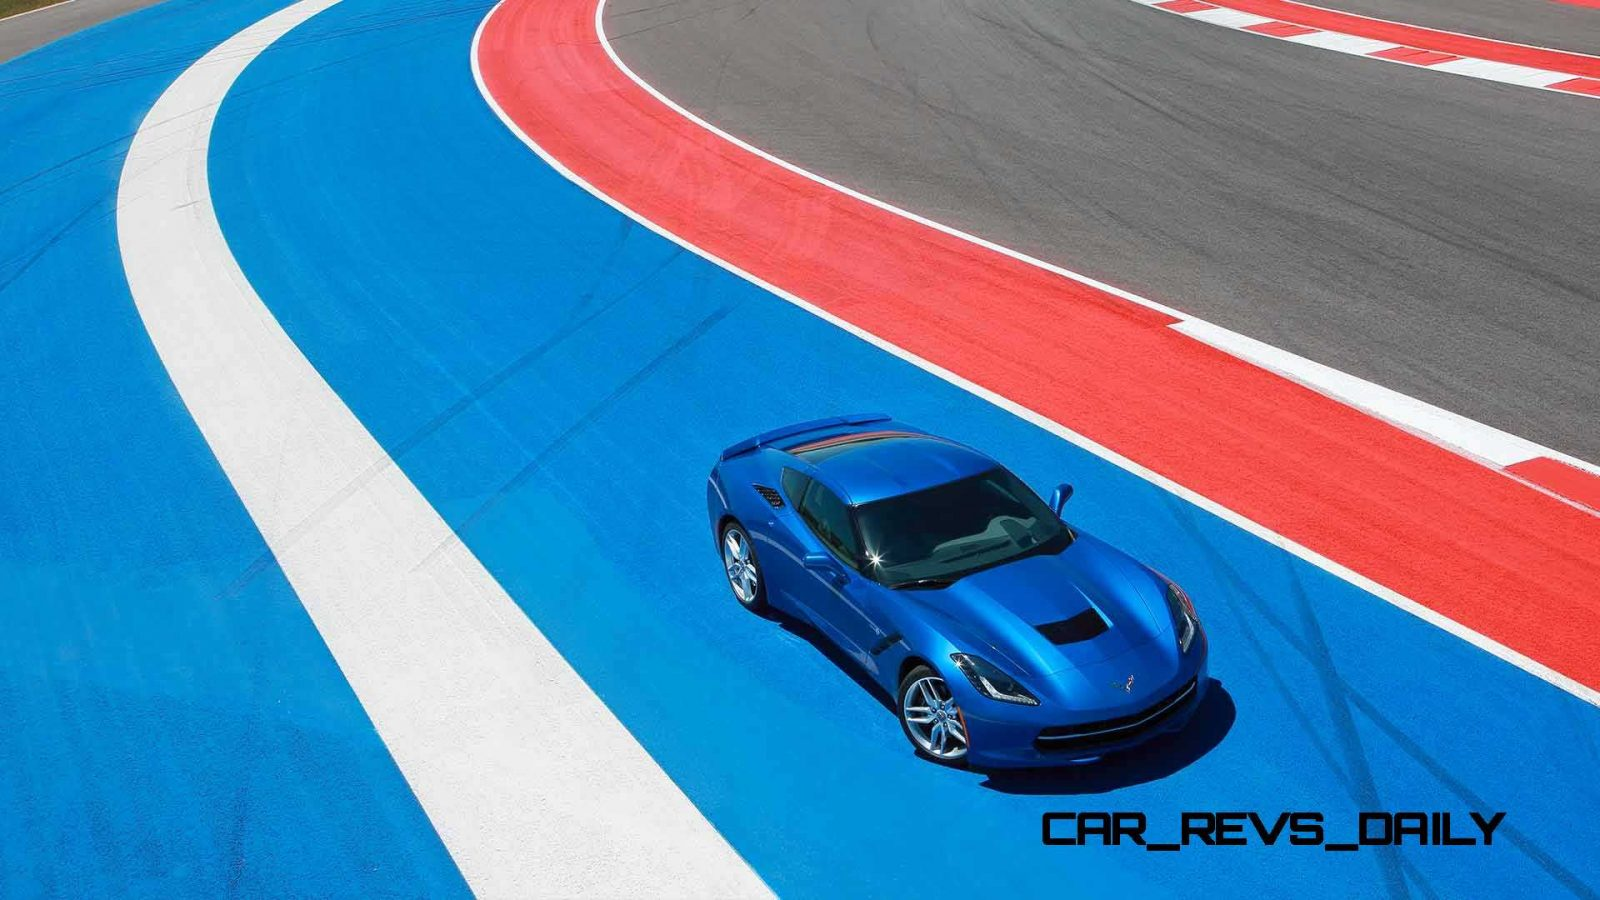 2014 Corvette Stingray Colors Gallery5